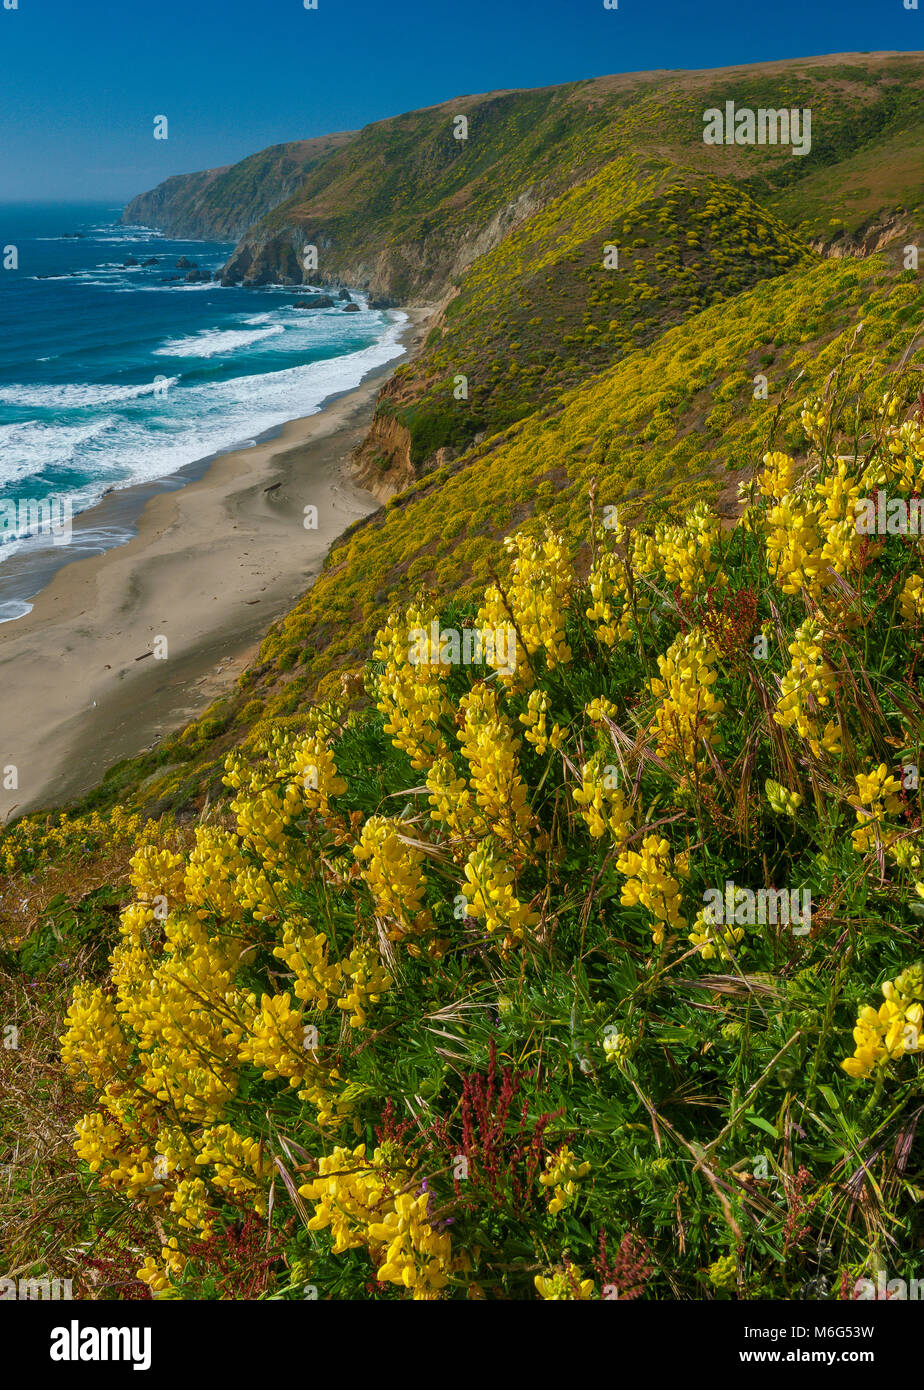 Arbre jaune Lupin, Tomales Point, Point Reyes National Seashore, comté de Marin, en Californie Photo Stock